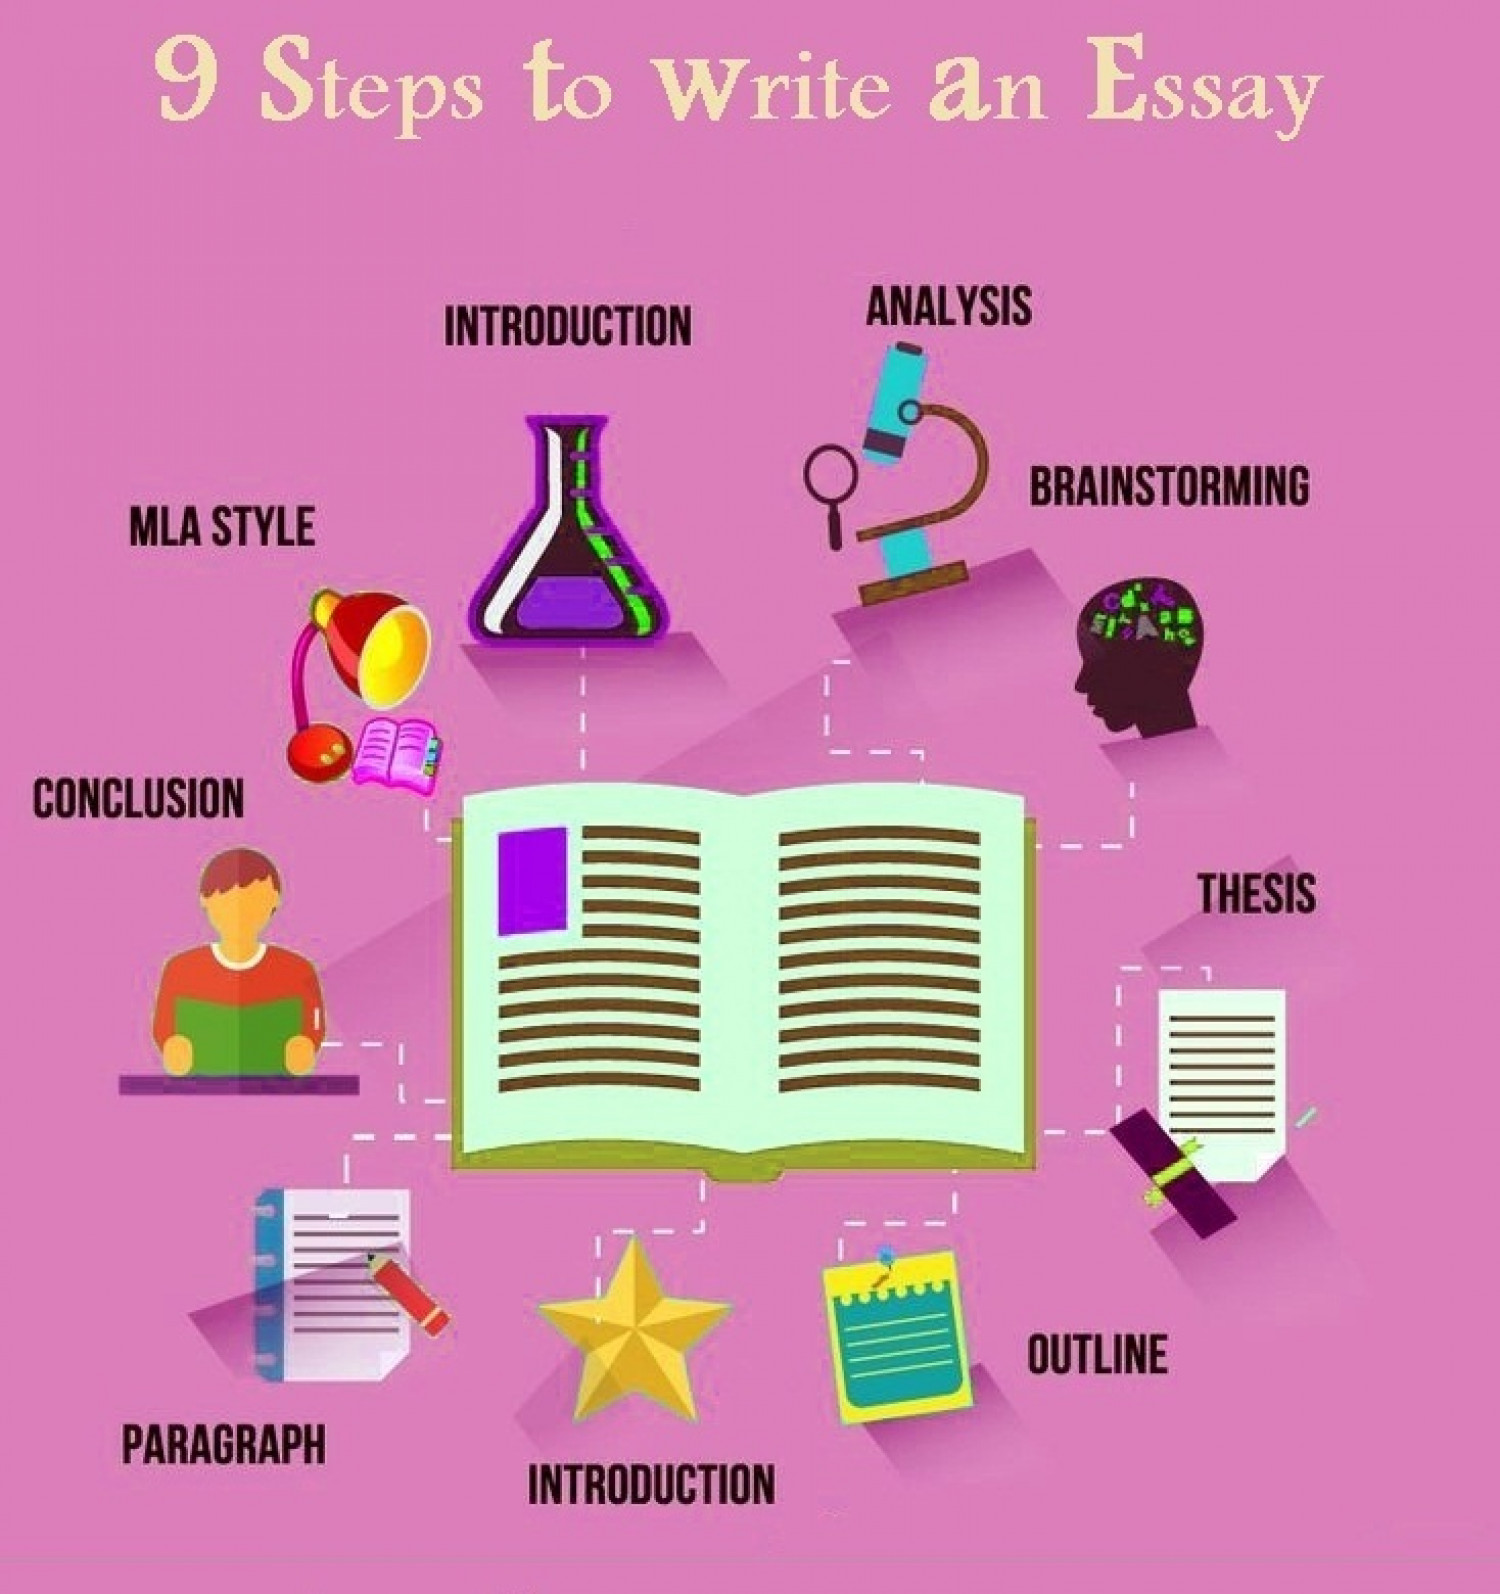 getting prepared to write research Writing the rough draft is a transition, one that takes you from the mental aspect   the ultimate goal of a strong introduction is to get the attention and interest of   in the conclusion, more emphasis is placed on the results of your research or on .